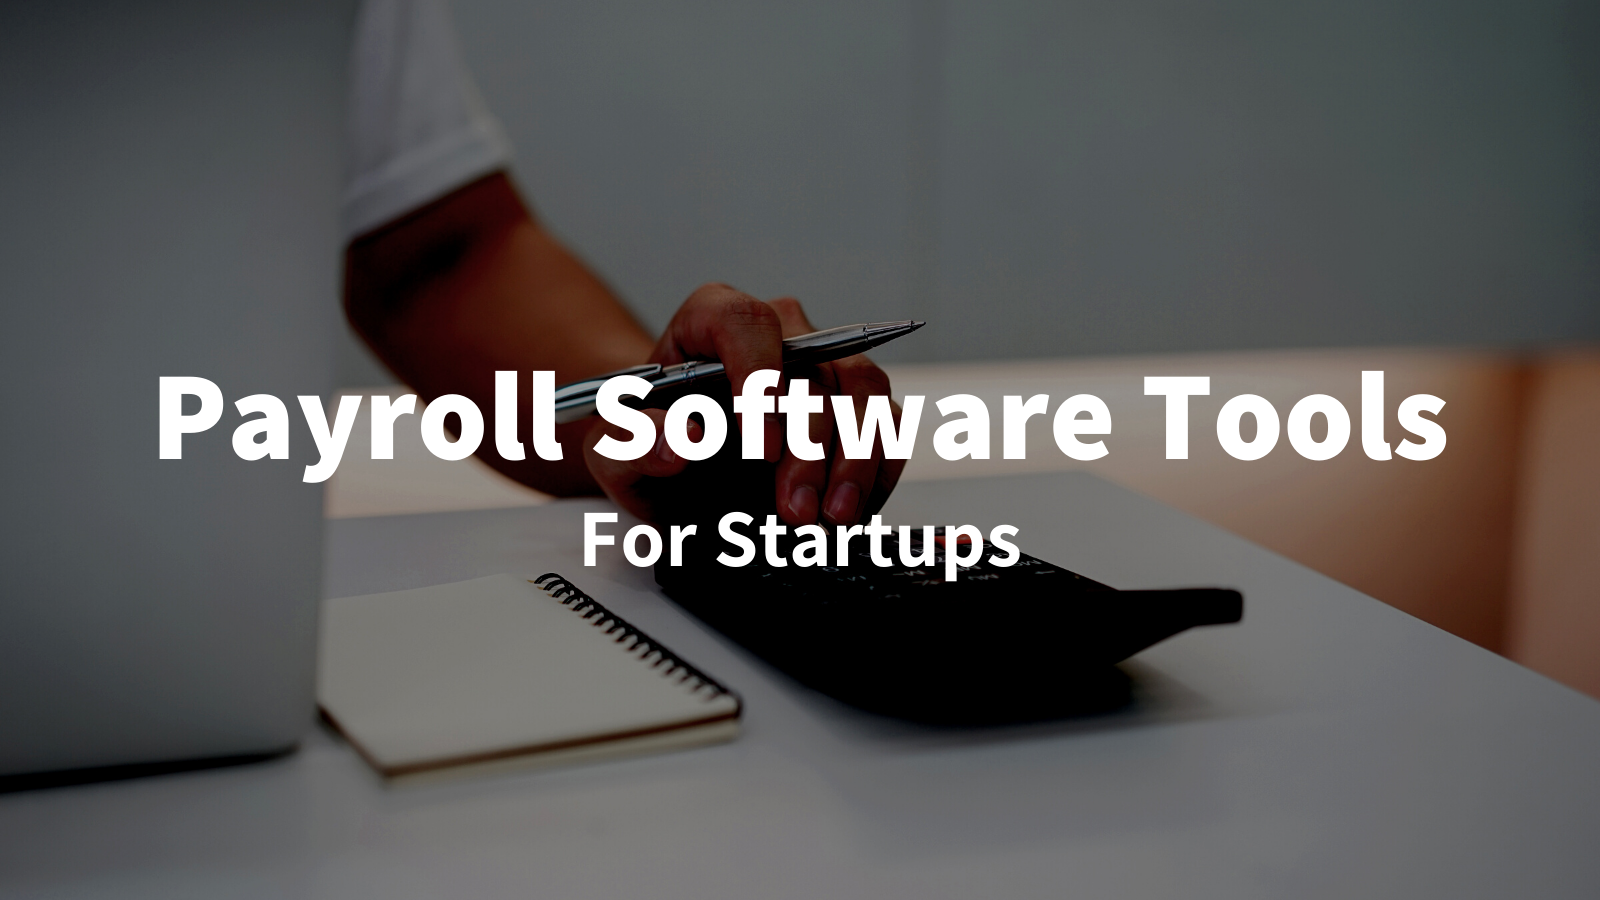 The 10 Best Payroll Software Tools for Startups